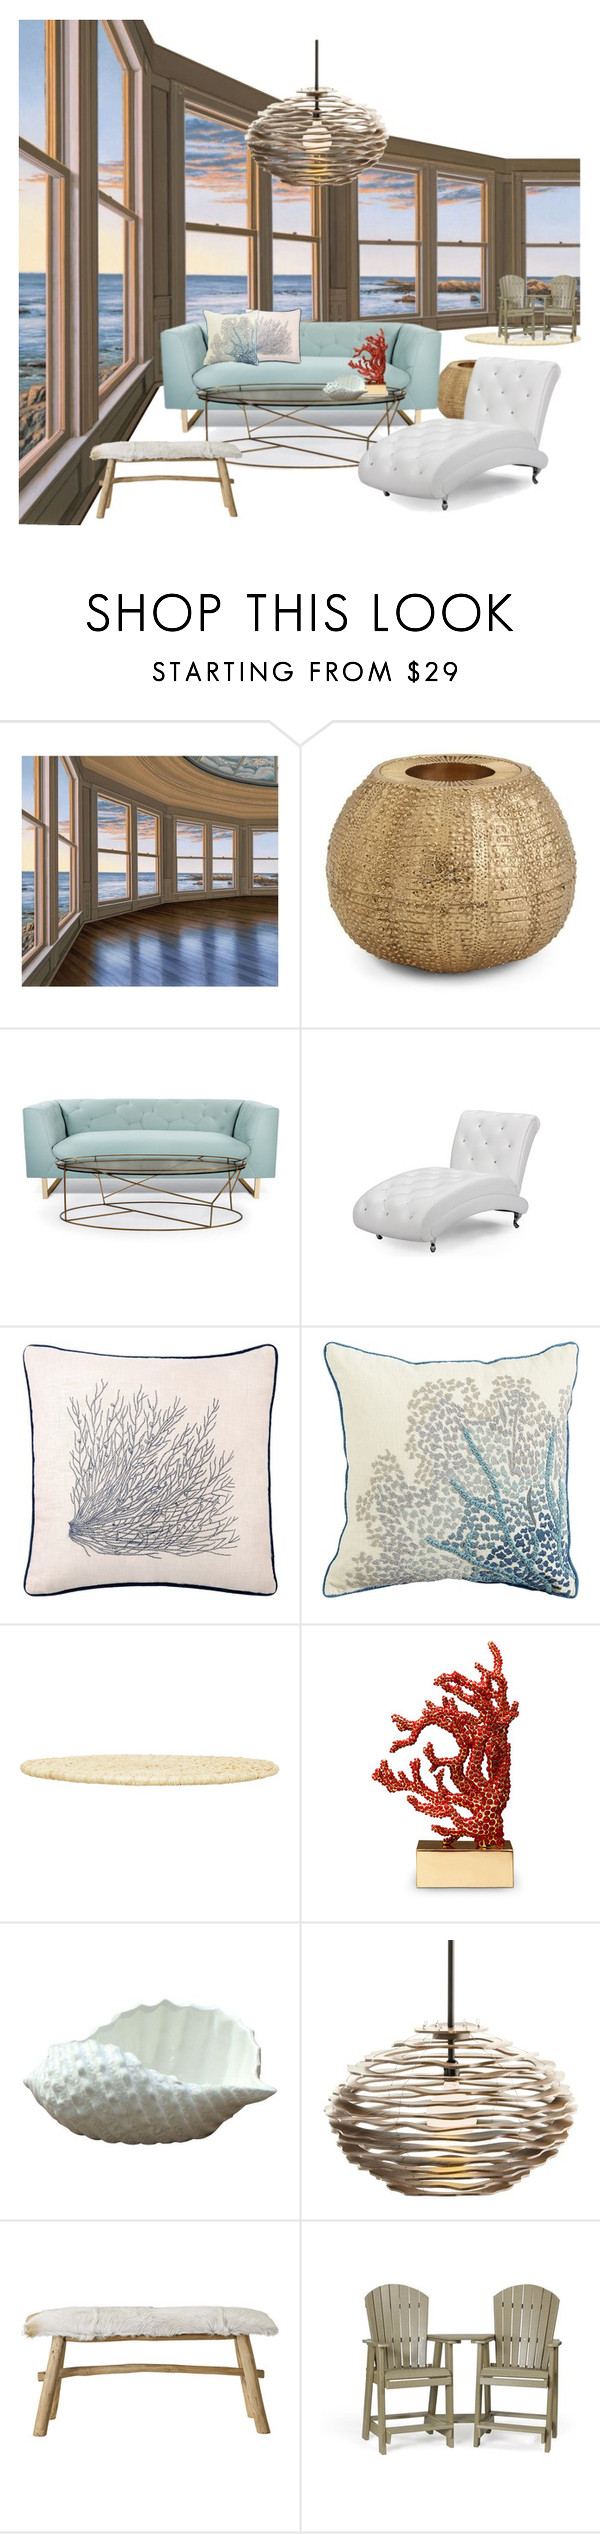 """""""Ariel's home (The Little Mermaid)"""" by cleopxtrx-home ❤ liked on Polyvore featuring interior, interiors, interior design, home, home decor, interior decorating, Future Media Development, AERIN, Nimbus and Baxton Studio"""